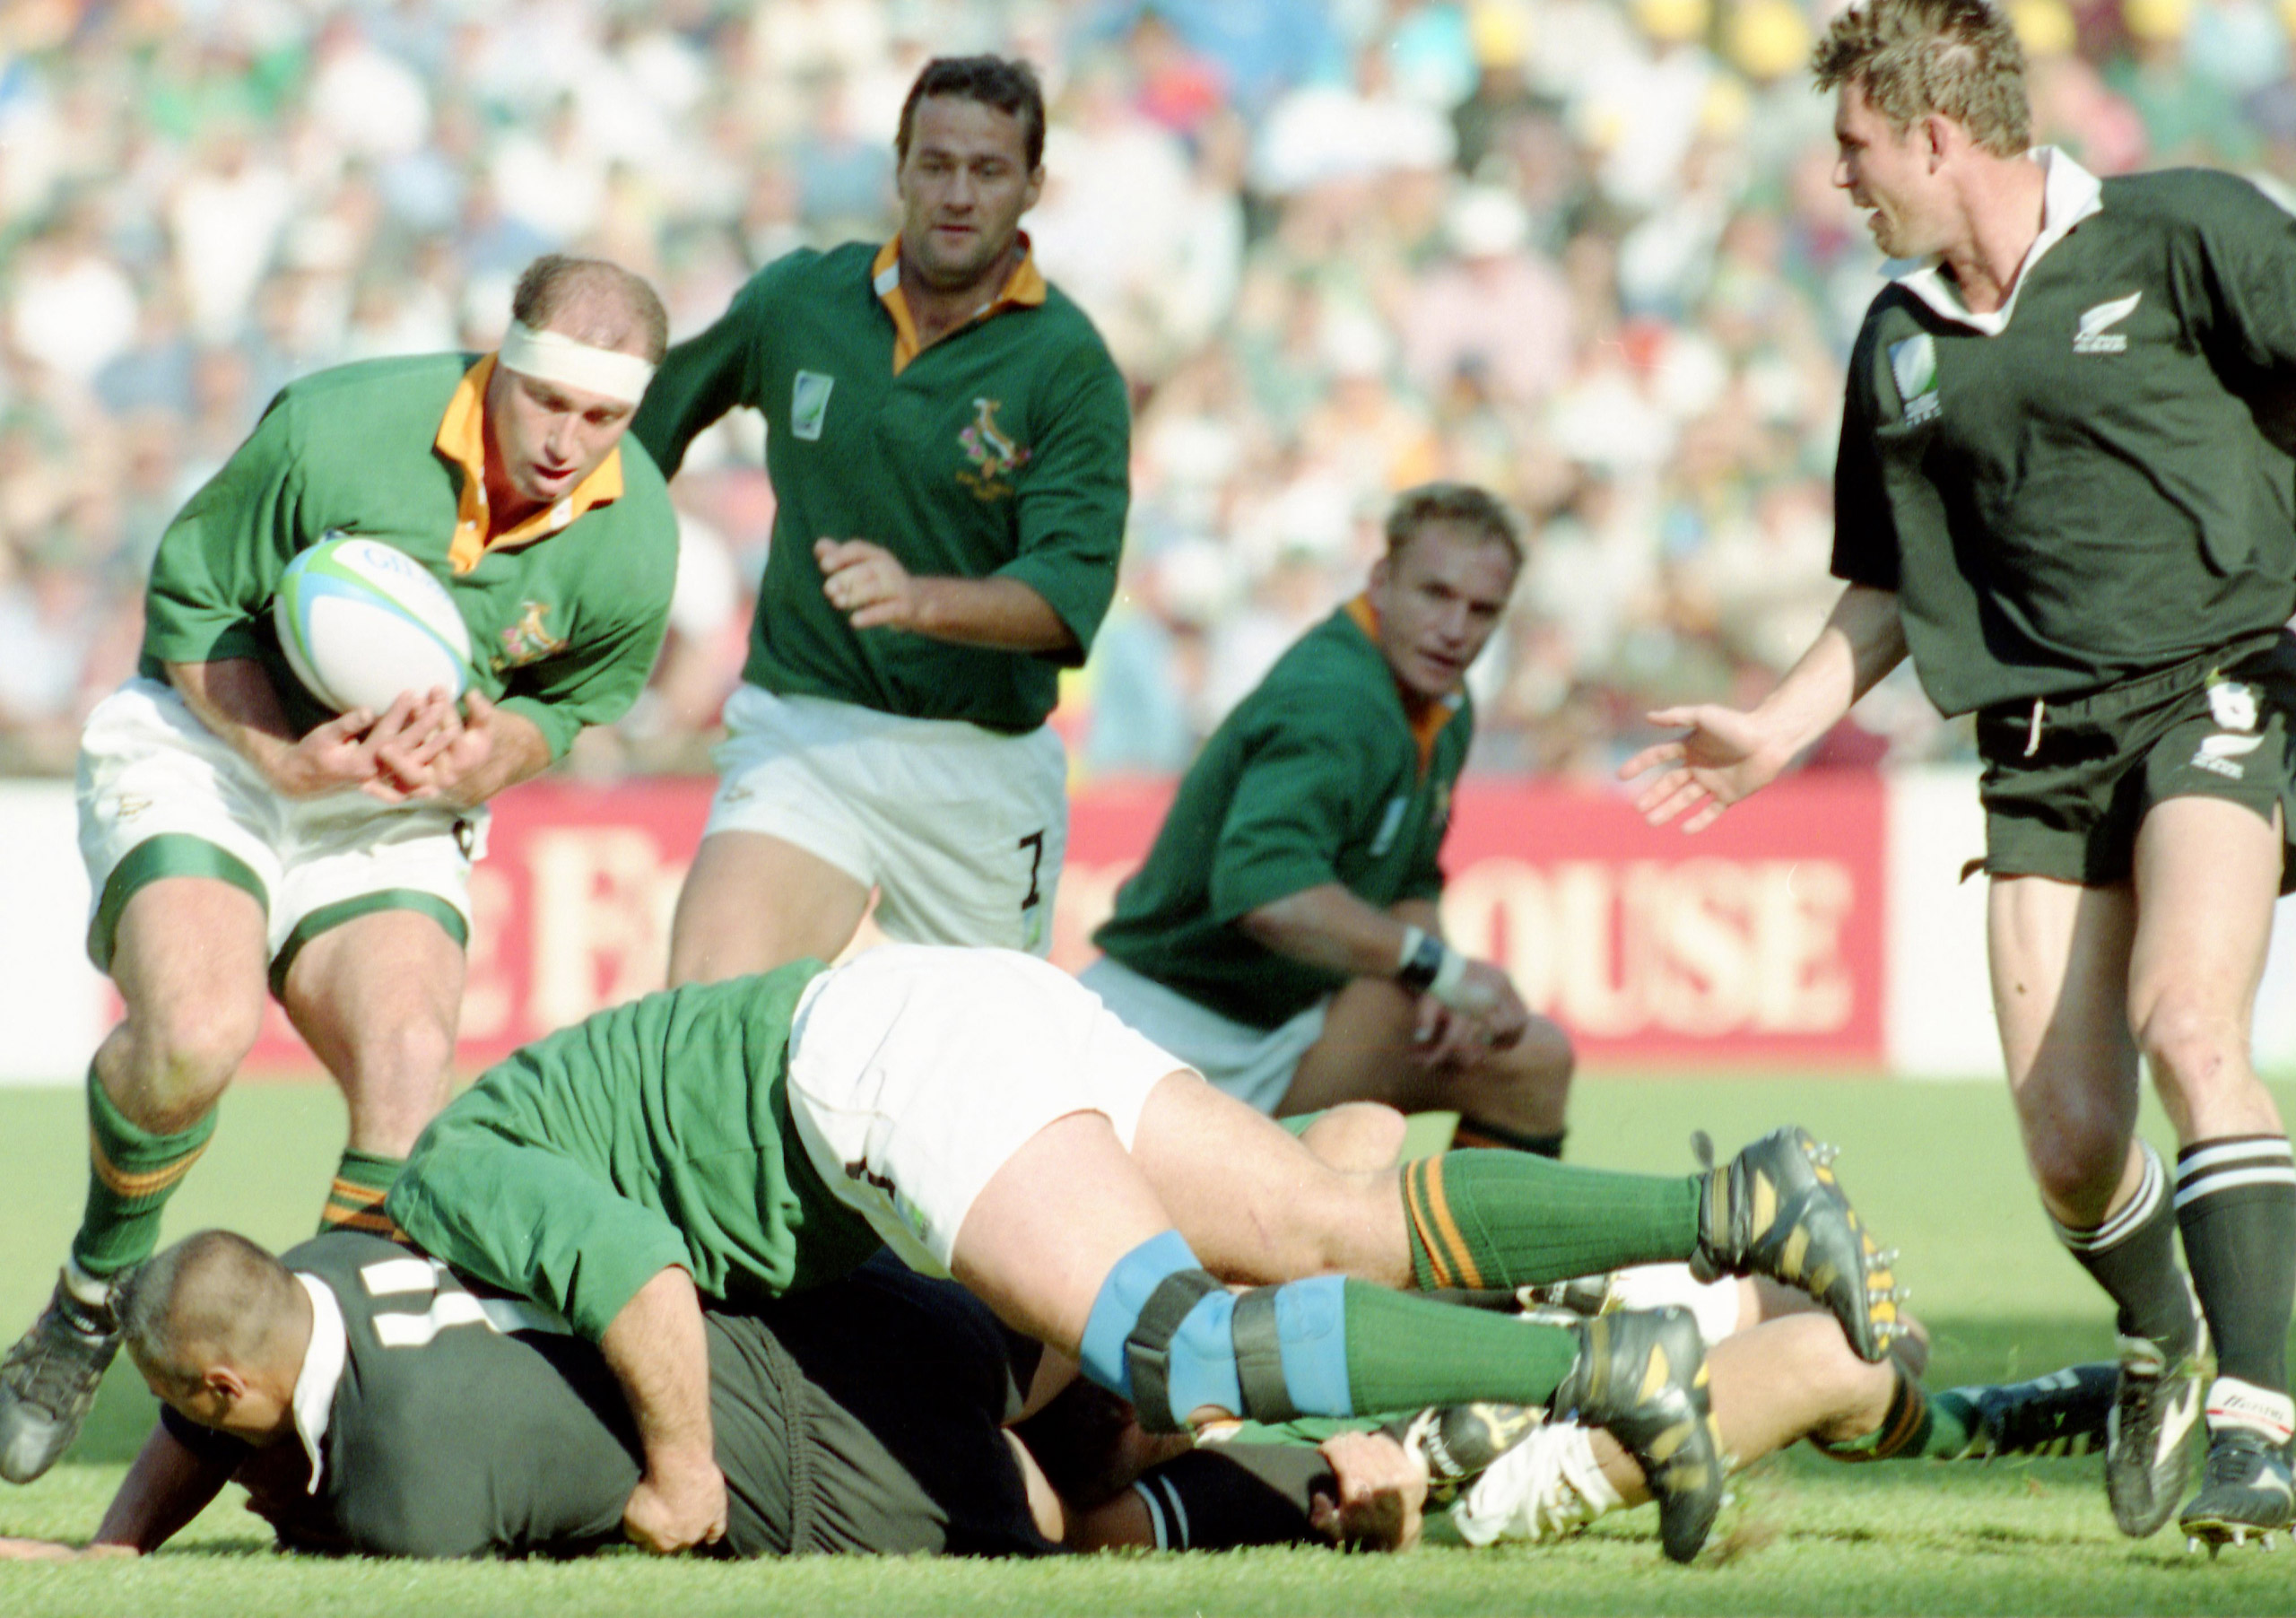 New Zealand player Jonah Lomu, bottom left, is tackled by South African players during the Rugby Union World Cup Final between South Africa and New Zealand at Ellis Park, Johannesburg, on June 24, 1995. South Africa defeated New Zealand 15 - 12, after extra time had been played.